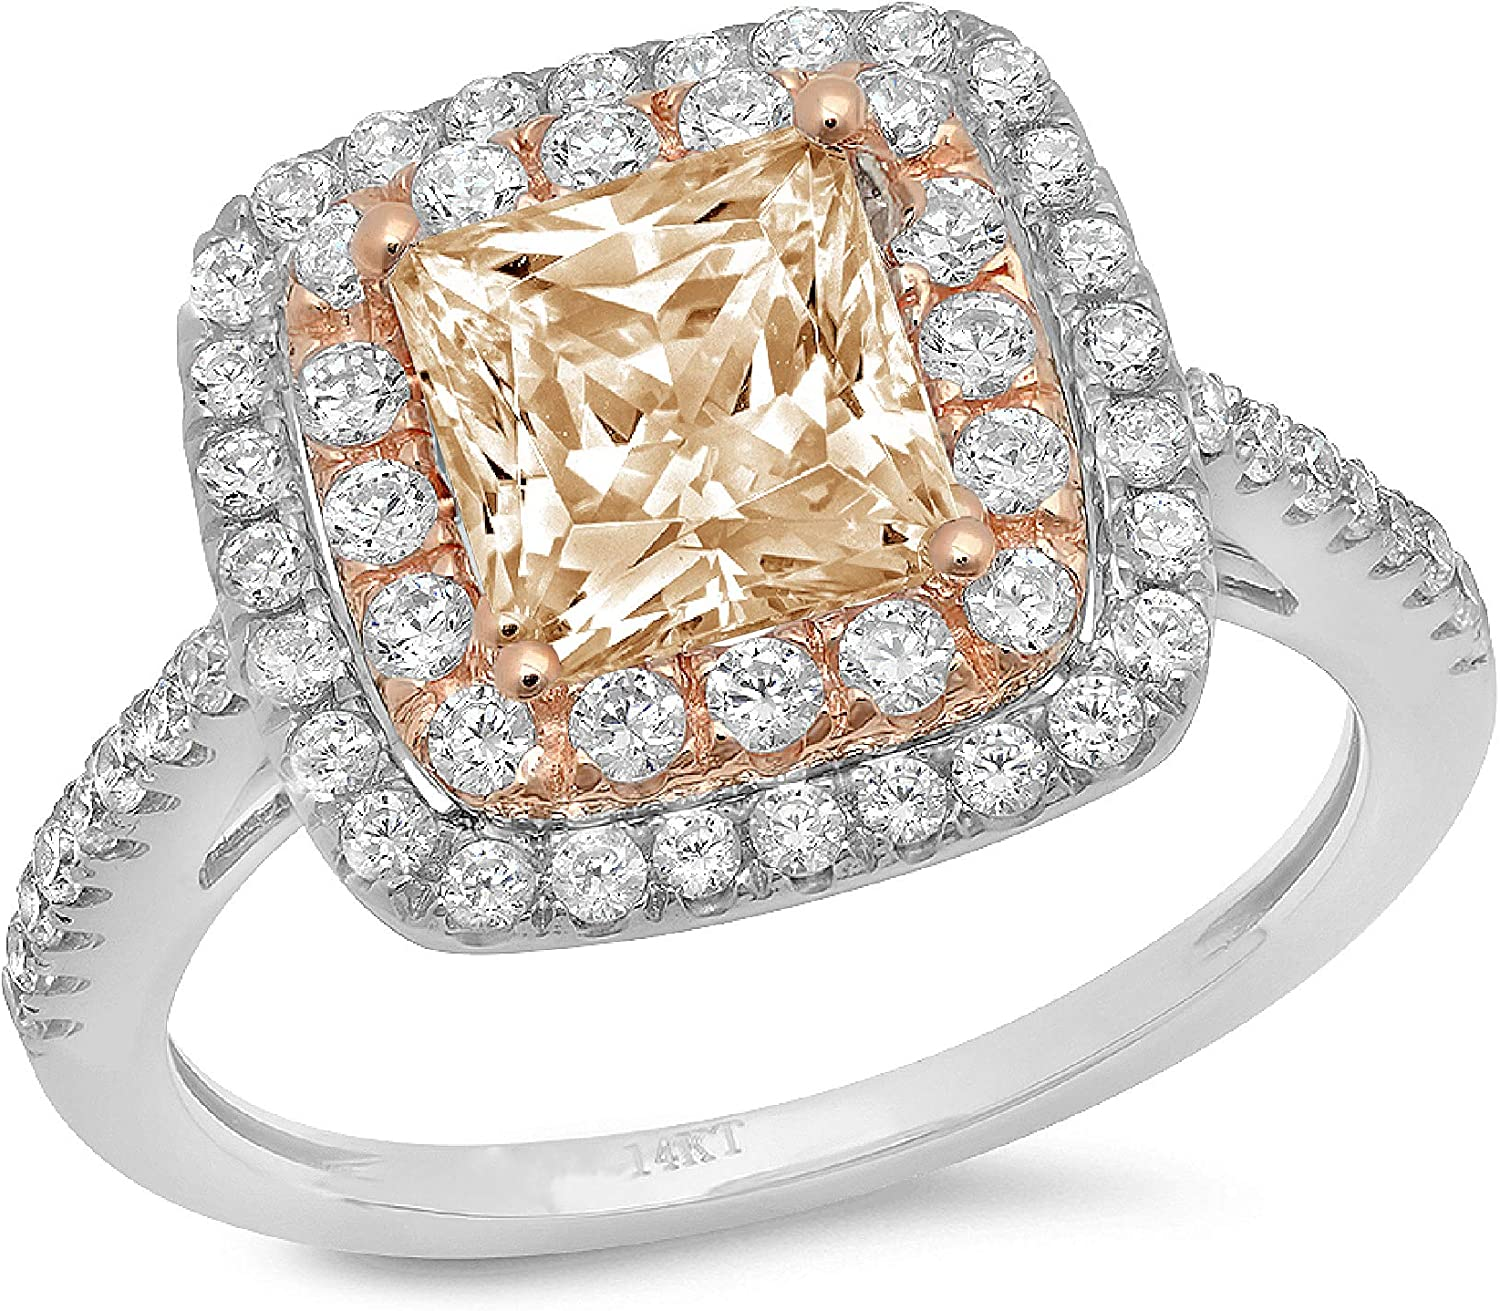 2.3ct Princess Cut Double Halo Solitaire with Accent Designer Genuine Natural Morganite Gemstone Ideal VVS1 Engagement Promise Statement Anniversary Bridal Wedding ring 14k 2 tone Gold